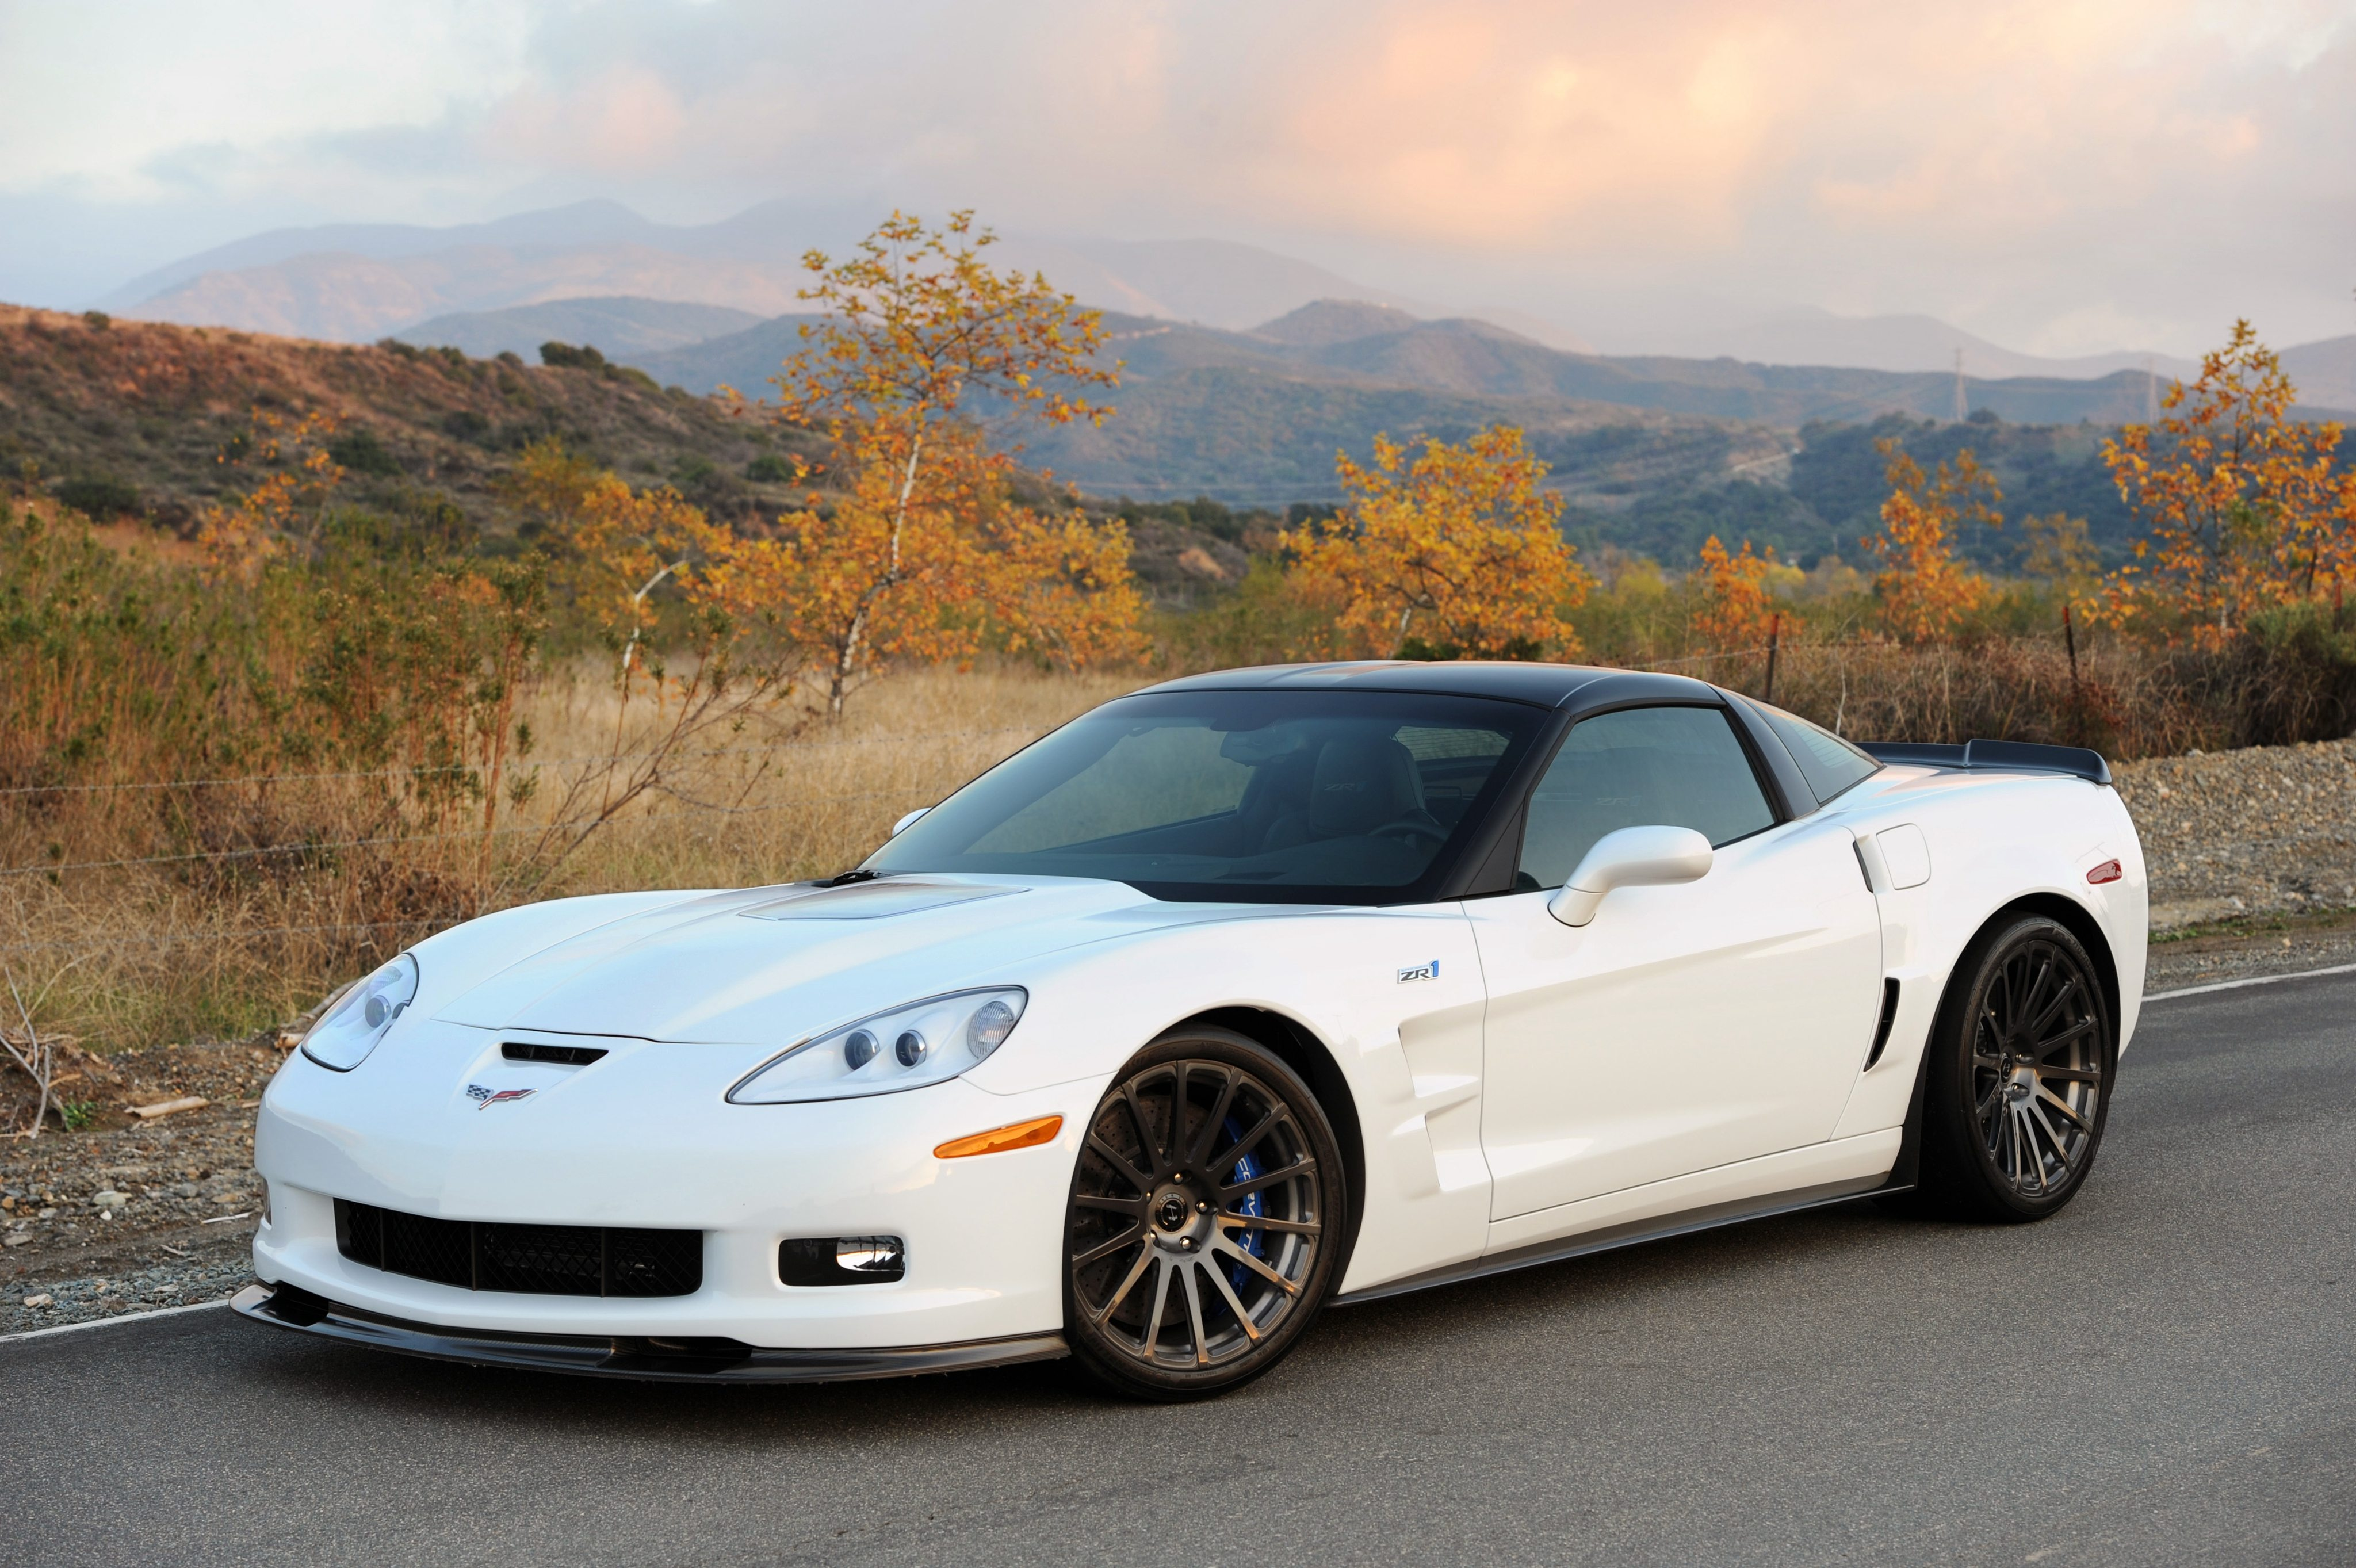 2011 Chevrolet Corvette ZR1 | Image Gallery & Pictures